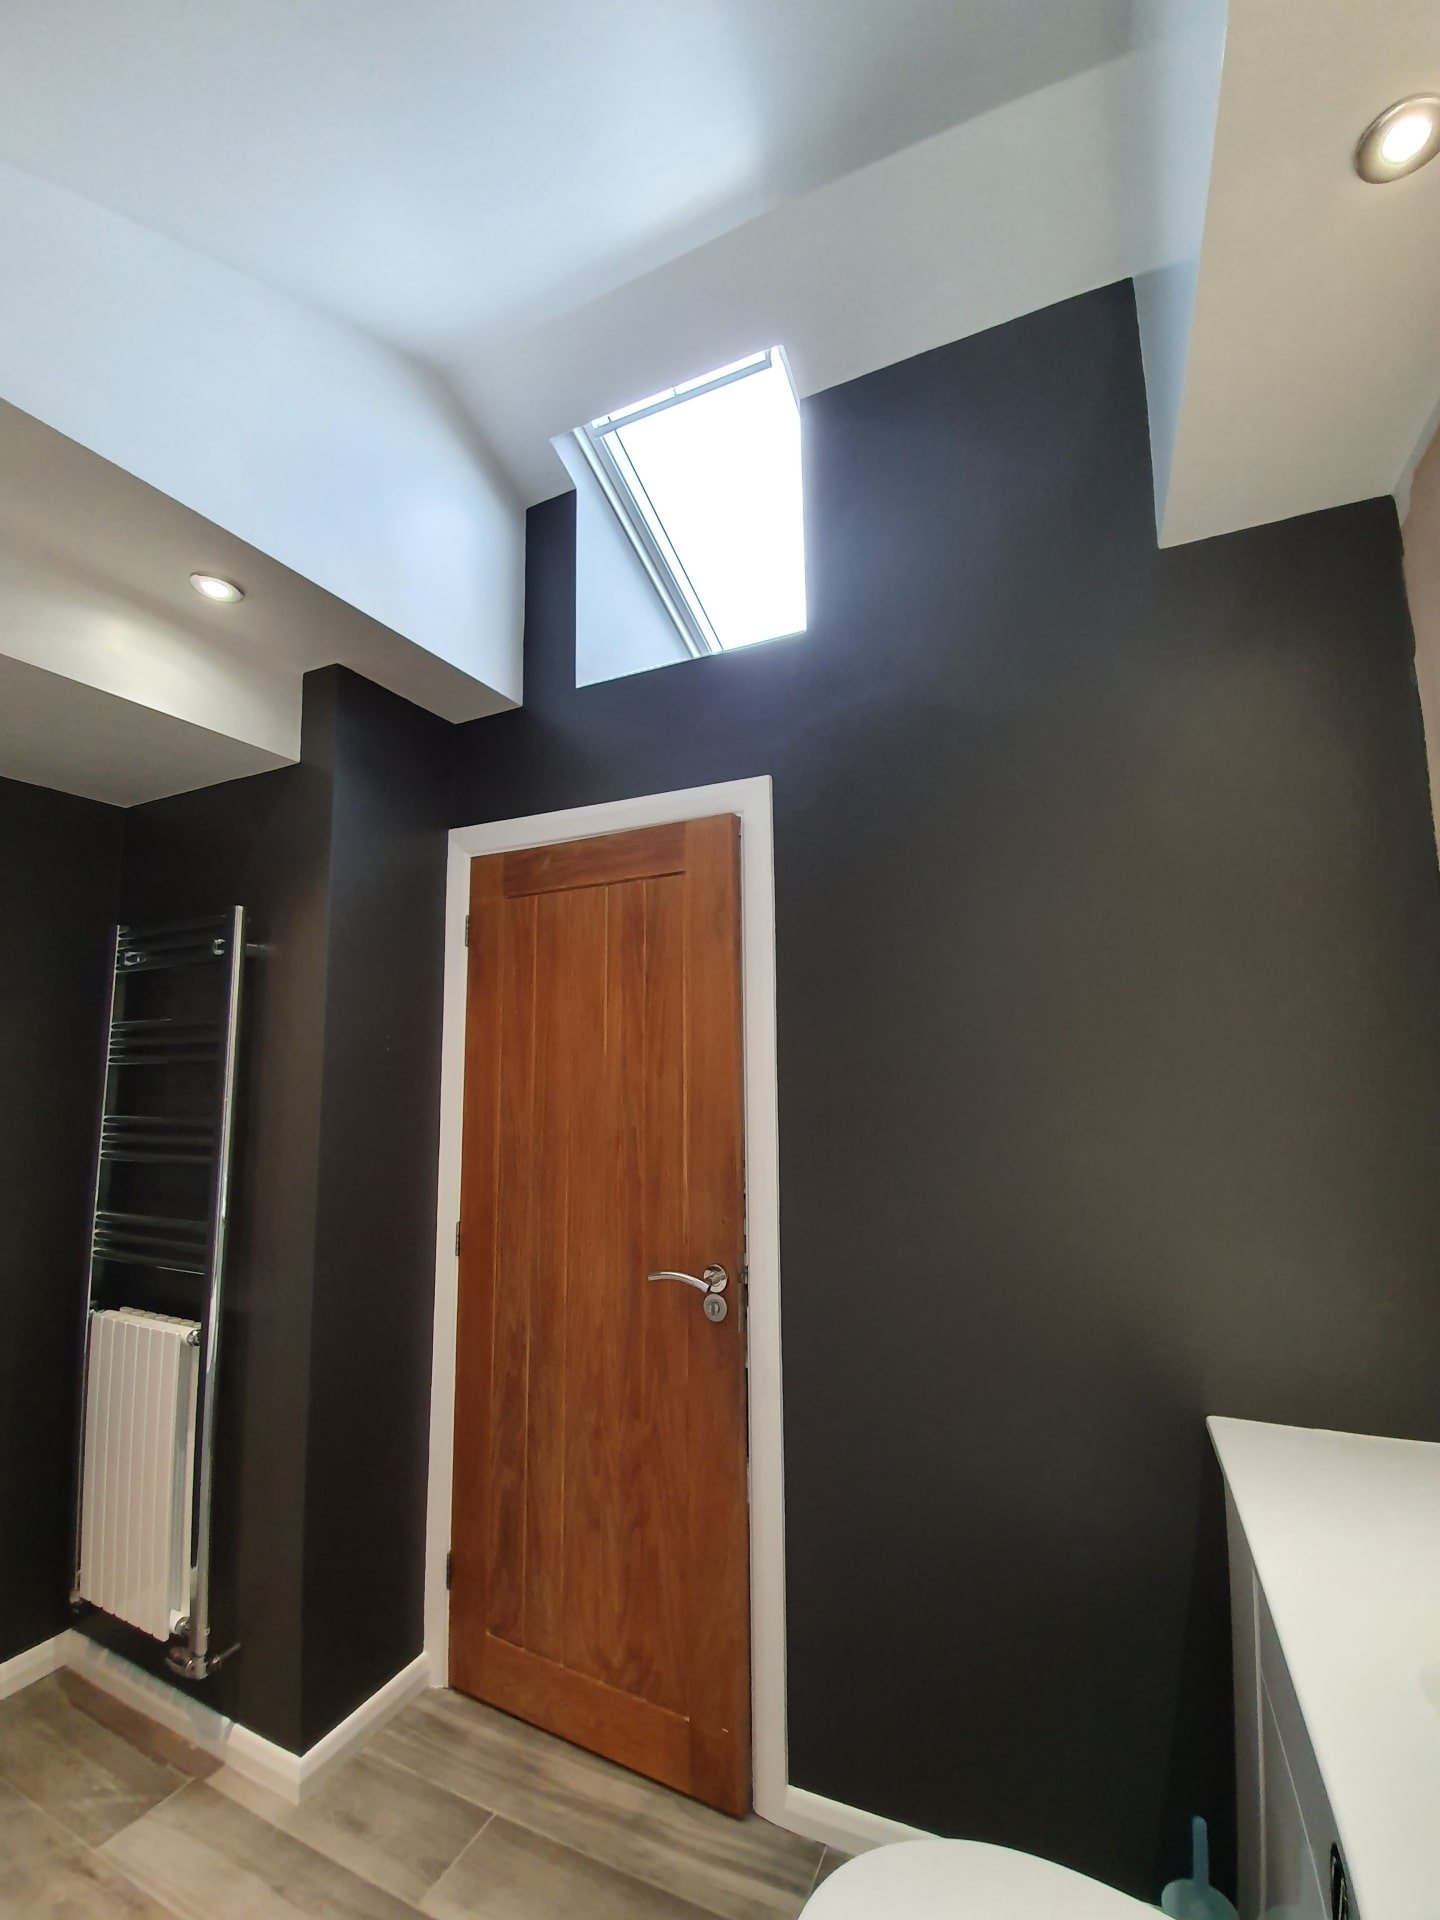 Bathroom painting and decorating - modern monochrome